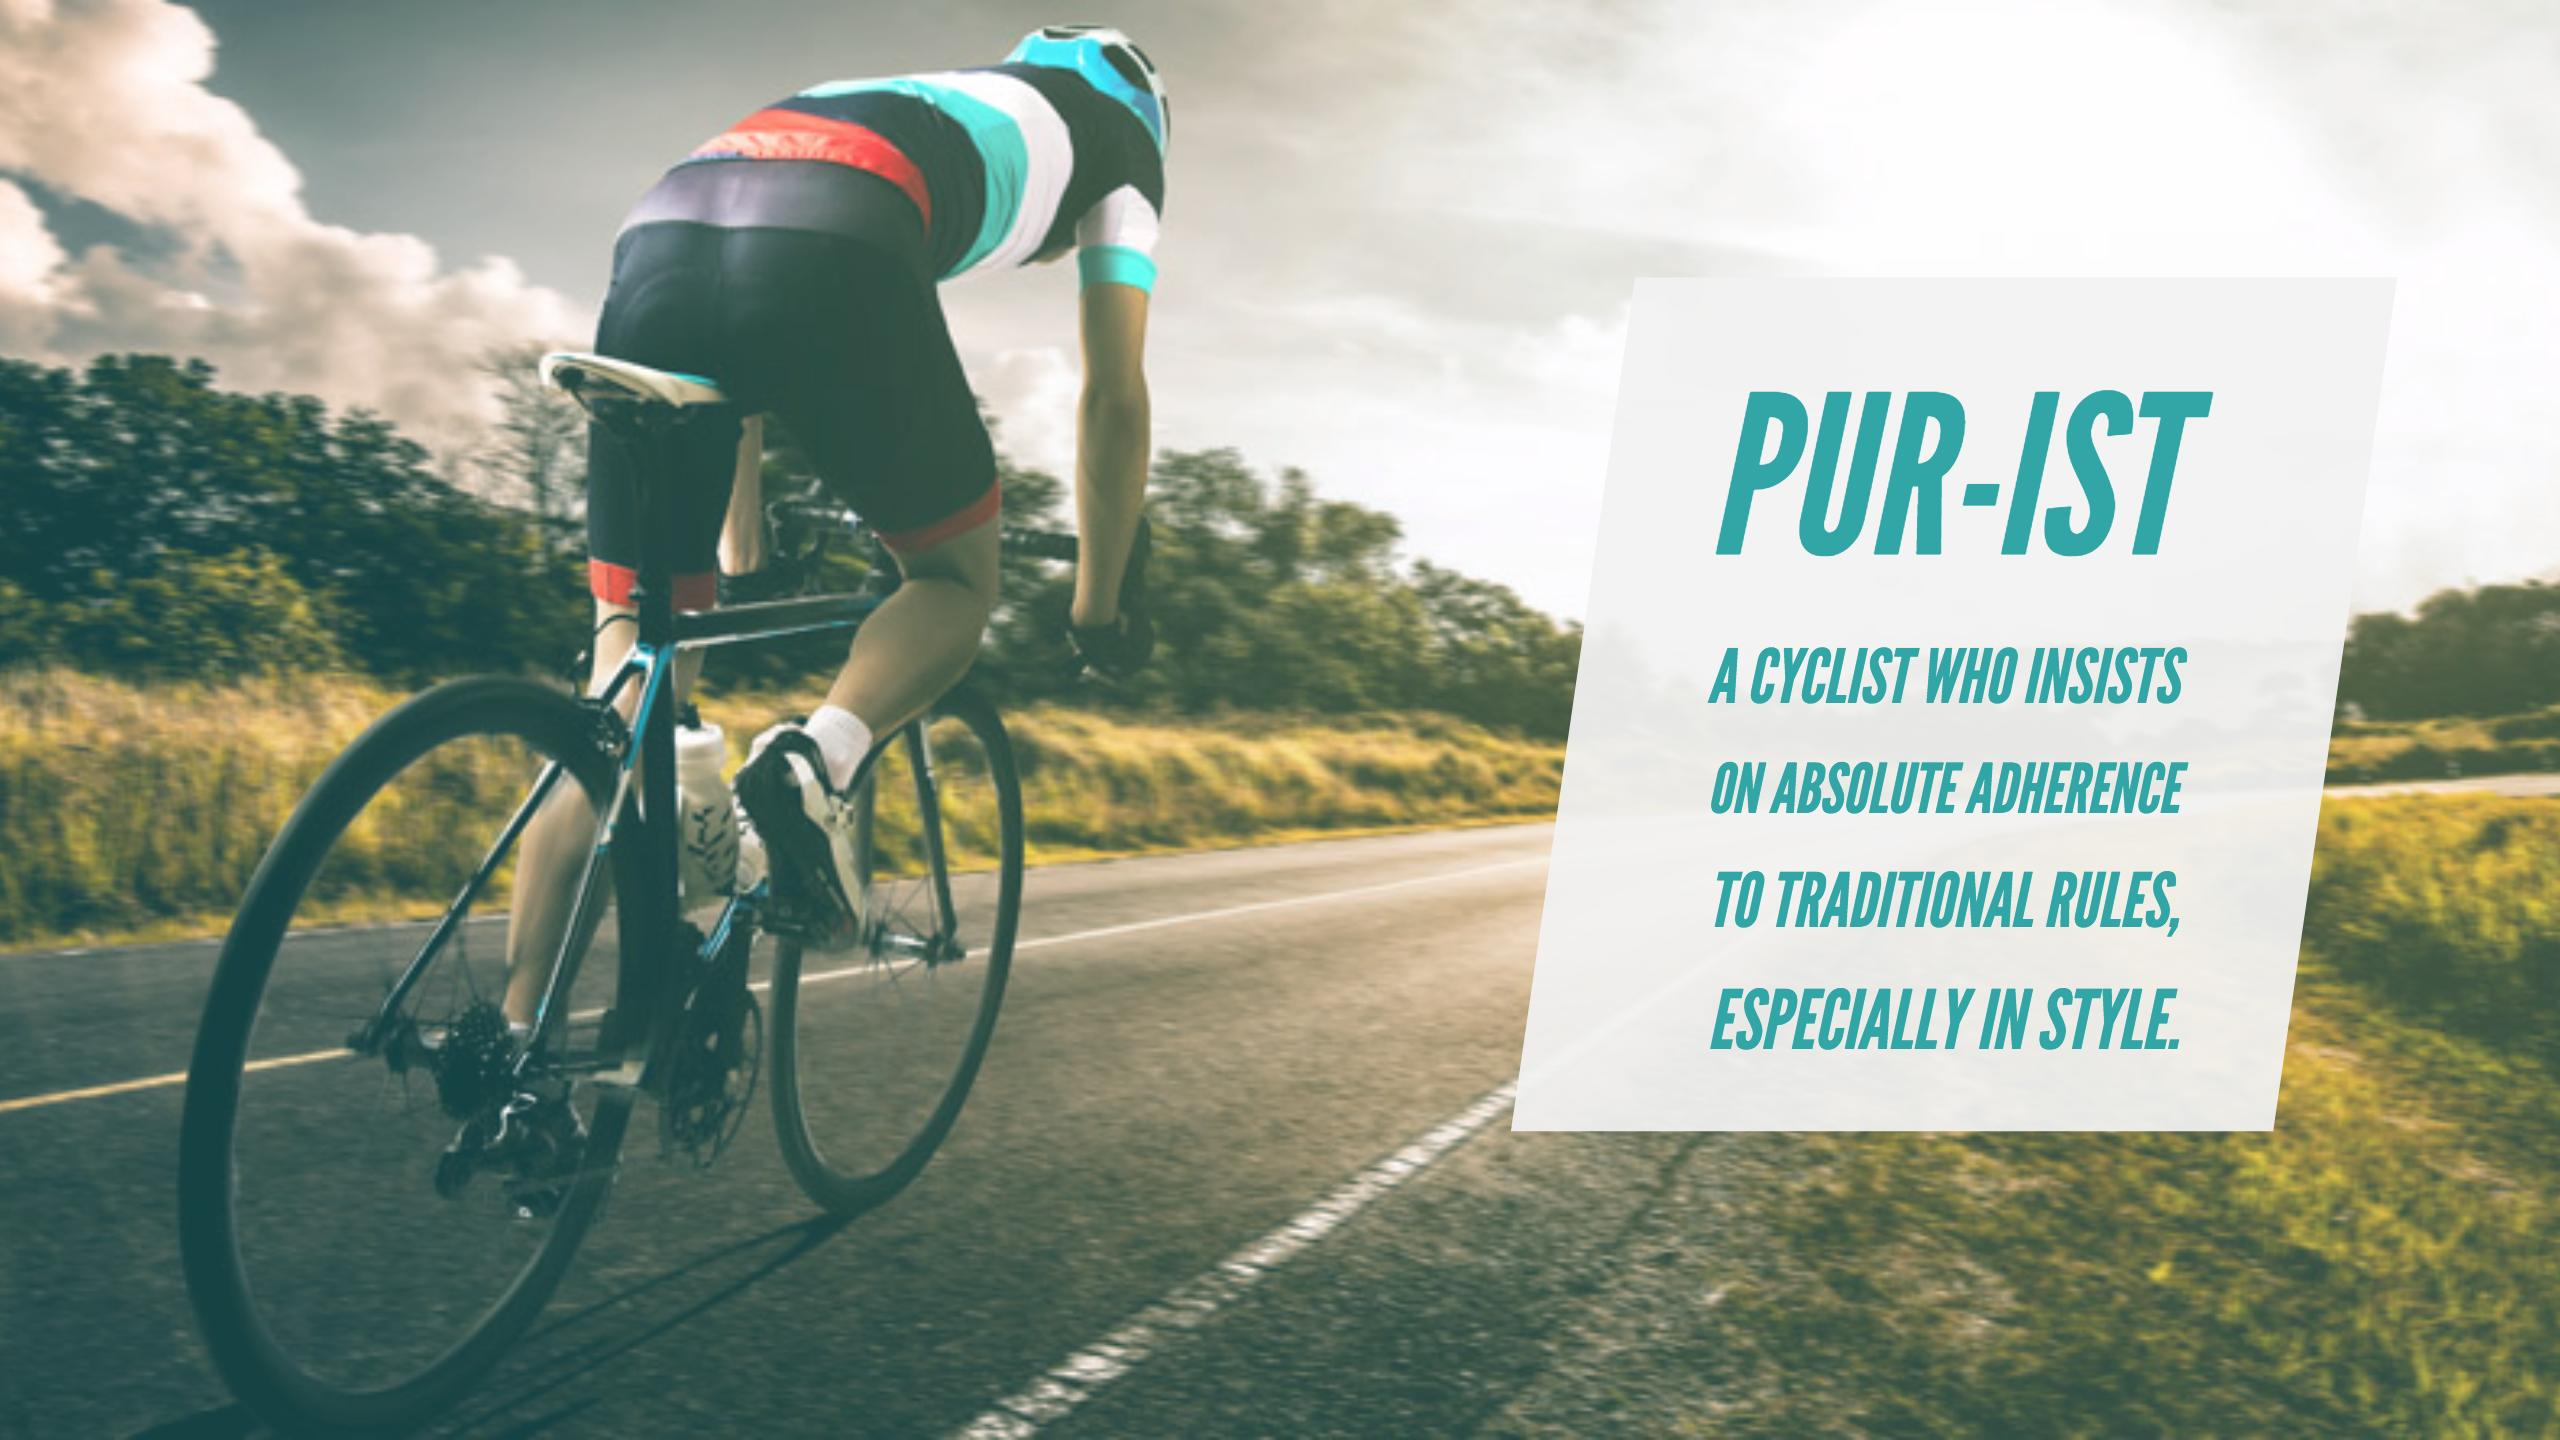 purist cyclists believe in tradition not electric bike benefits